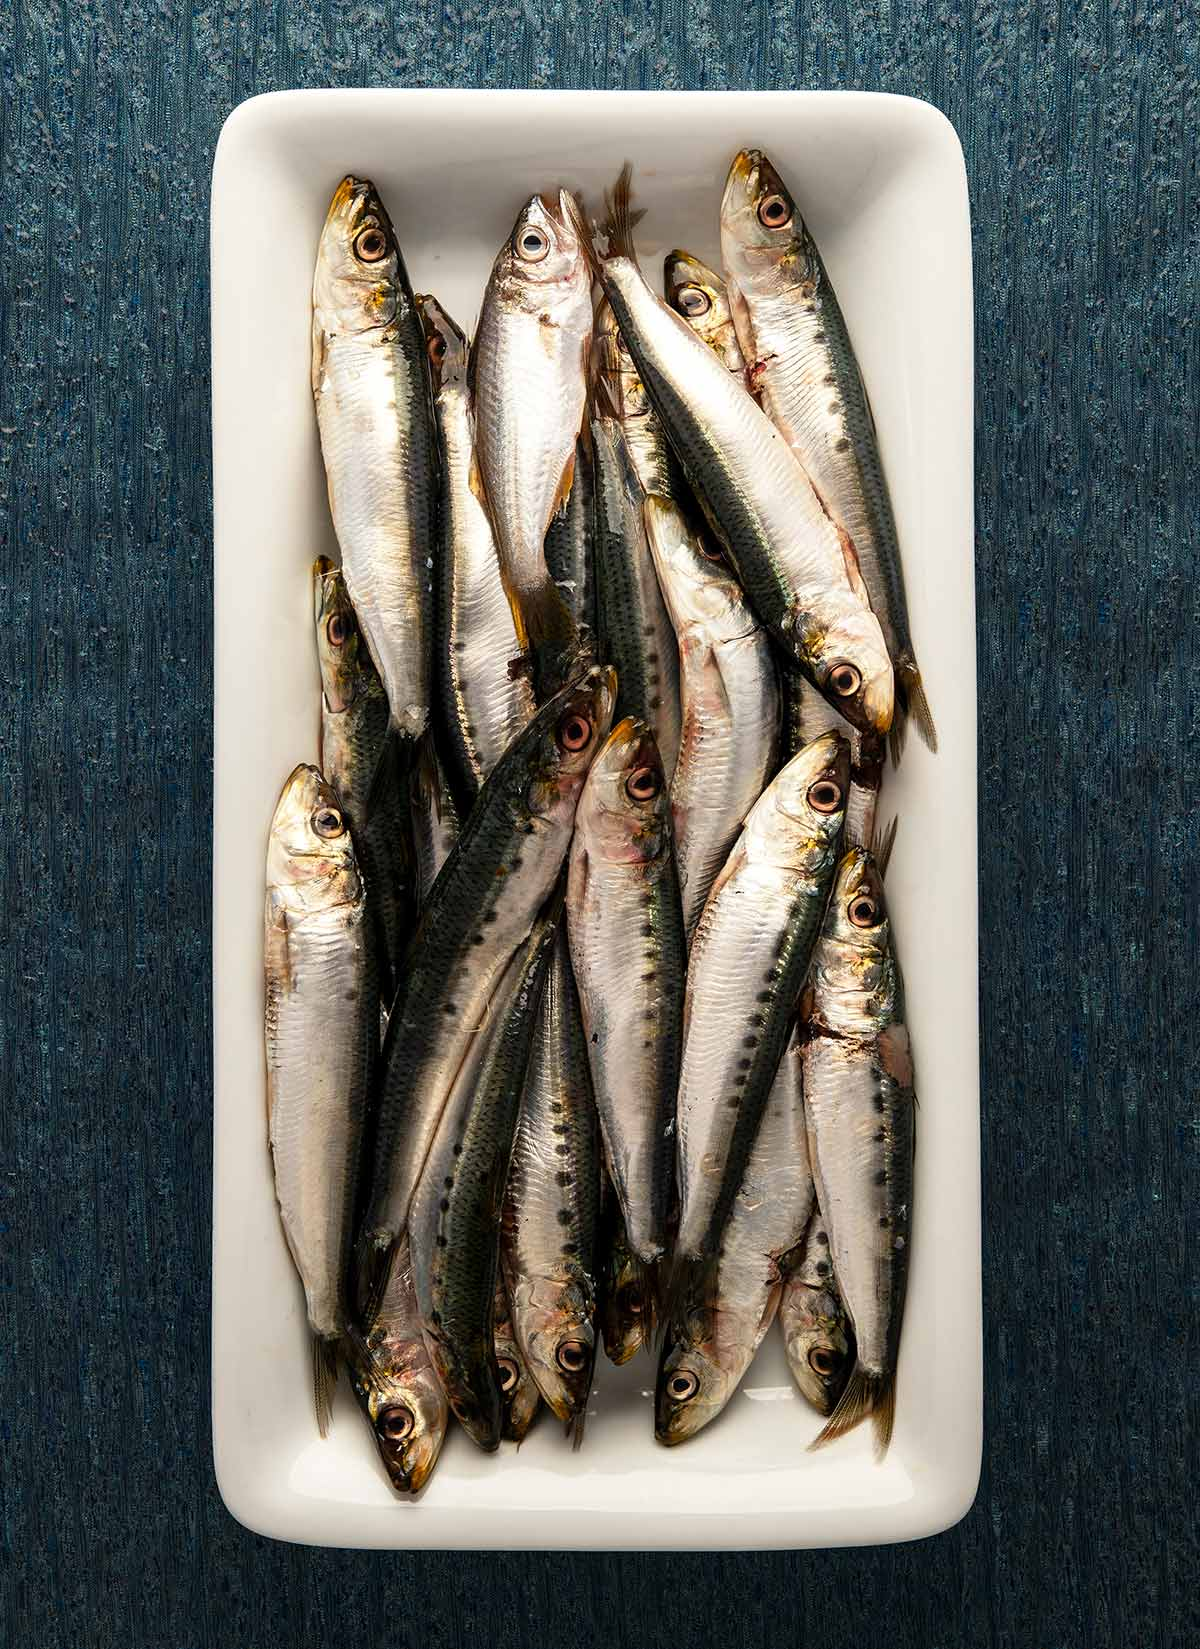 A plate of Pacific sardines